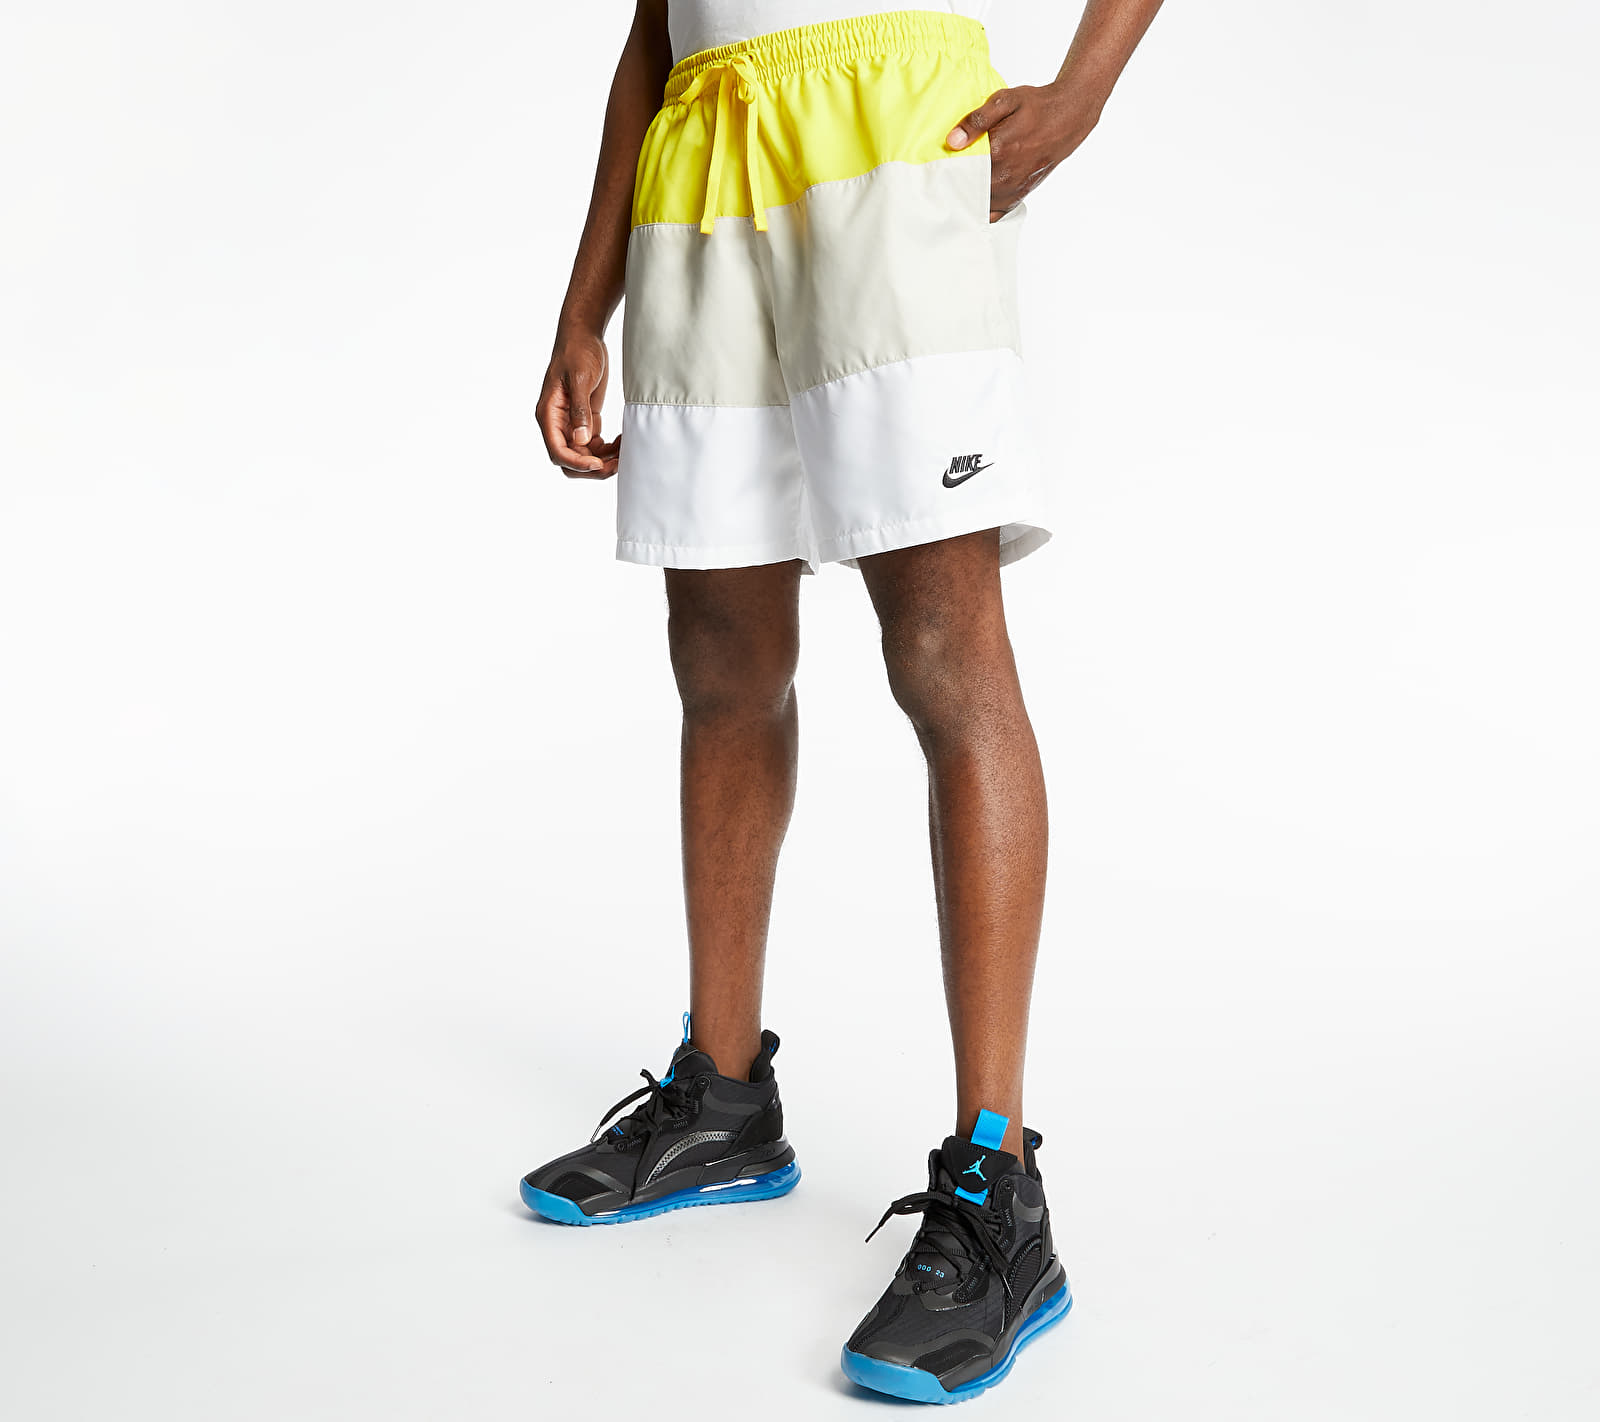 Nike Sportswear SCE Woven Nvlty Shorts Opti Yellow/ Light Bone/ White/ Black